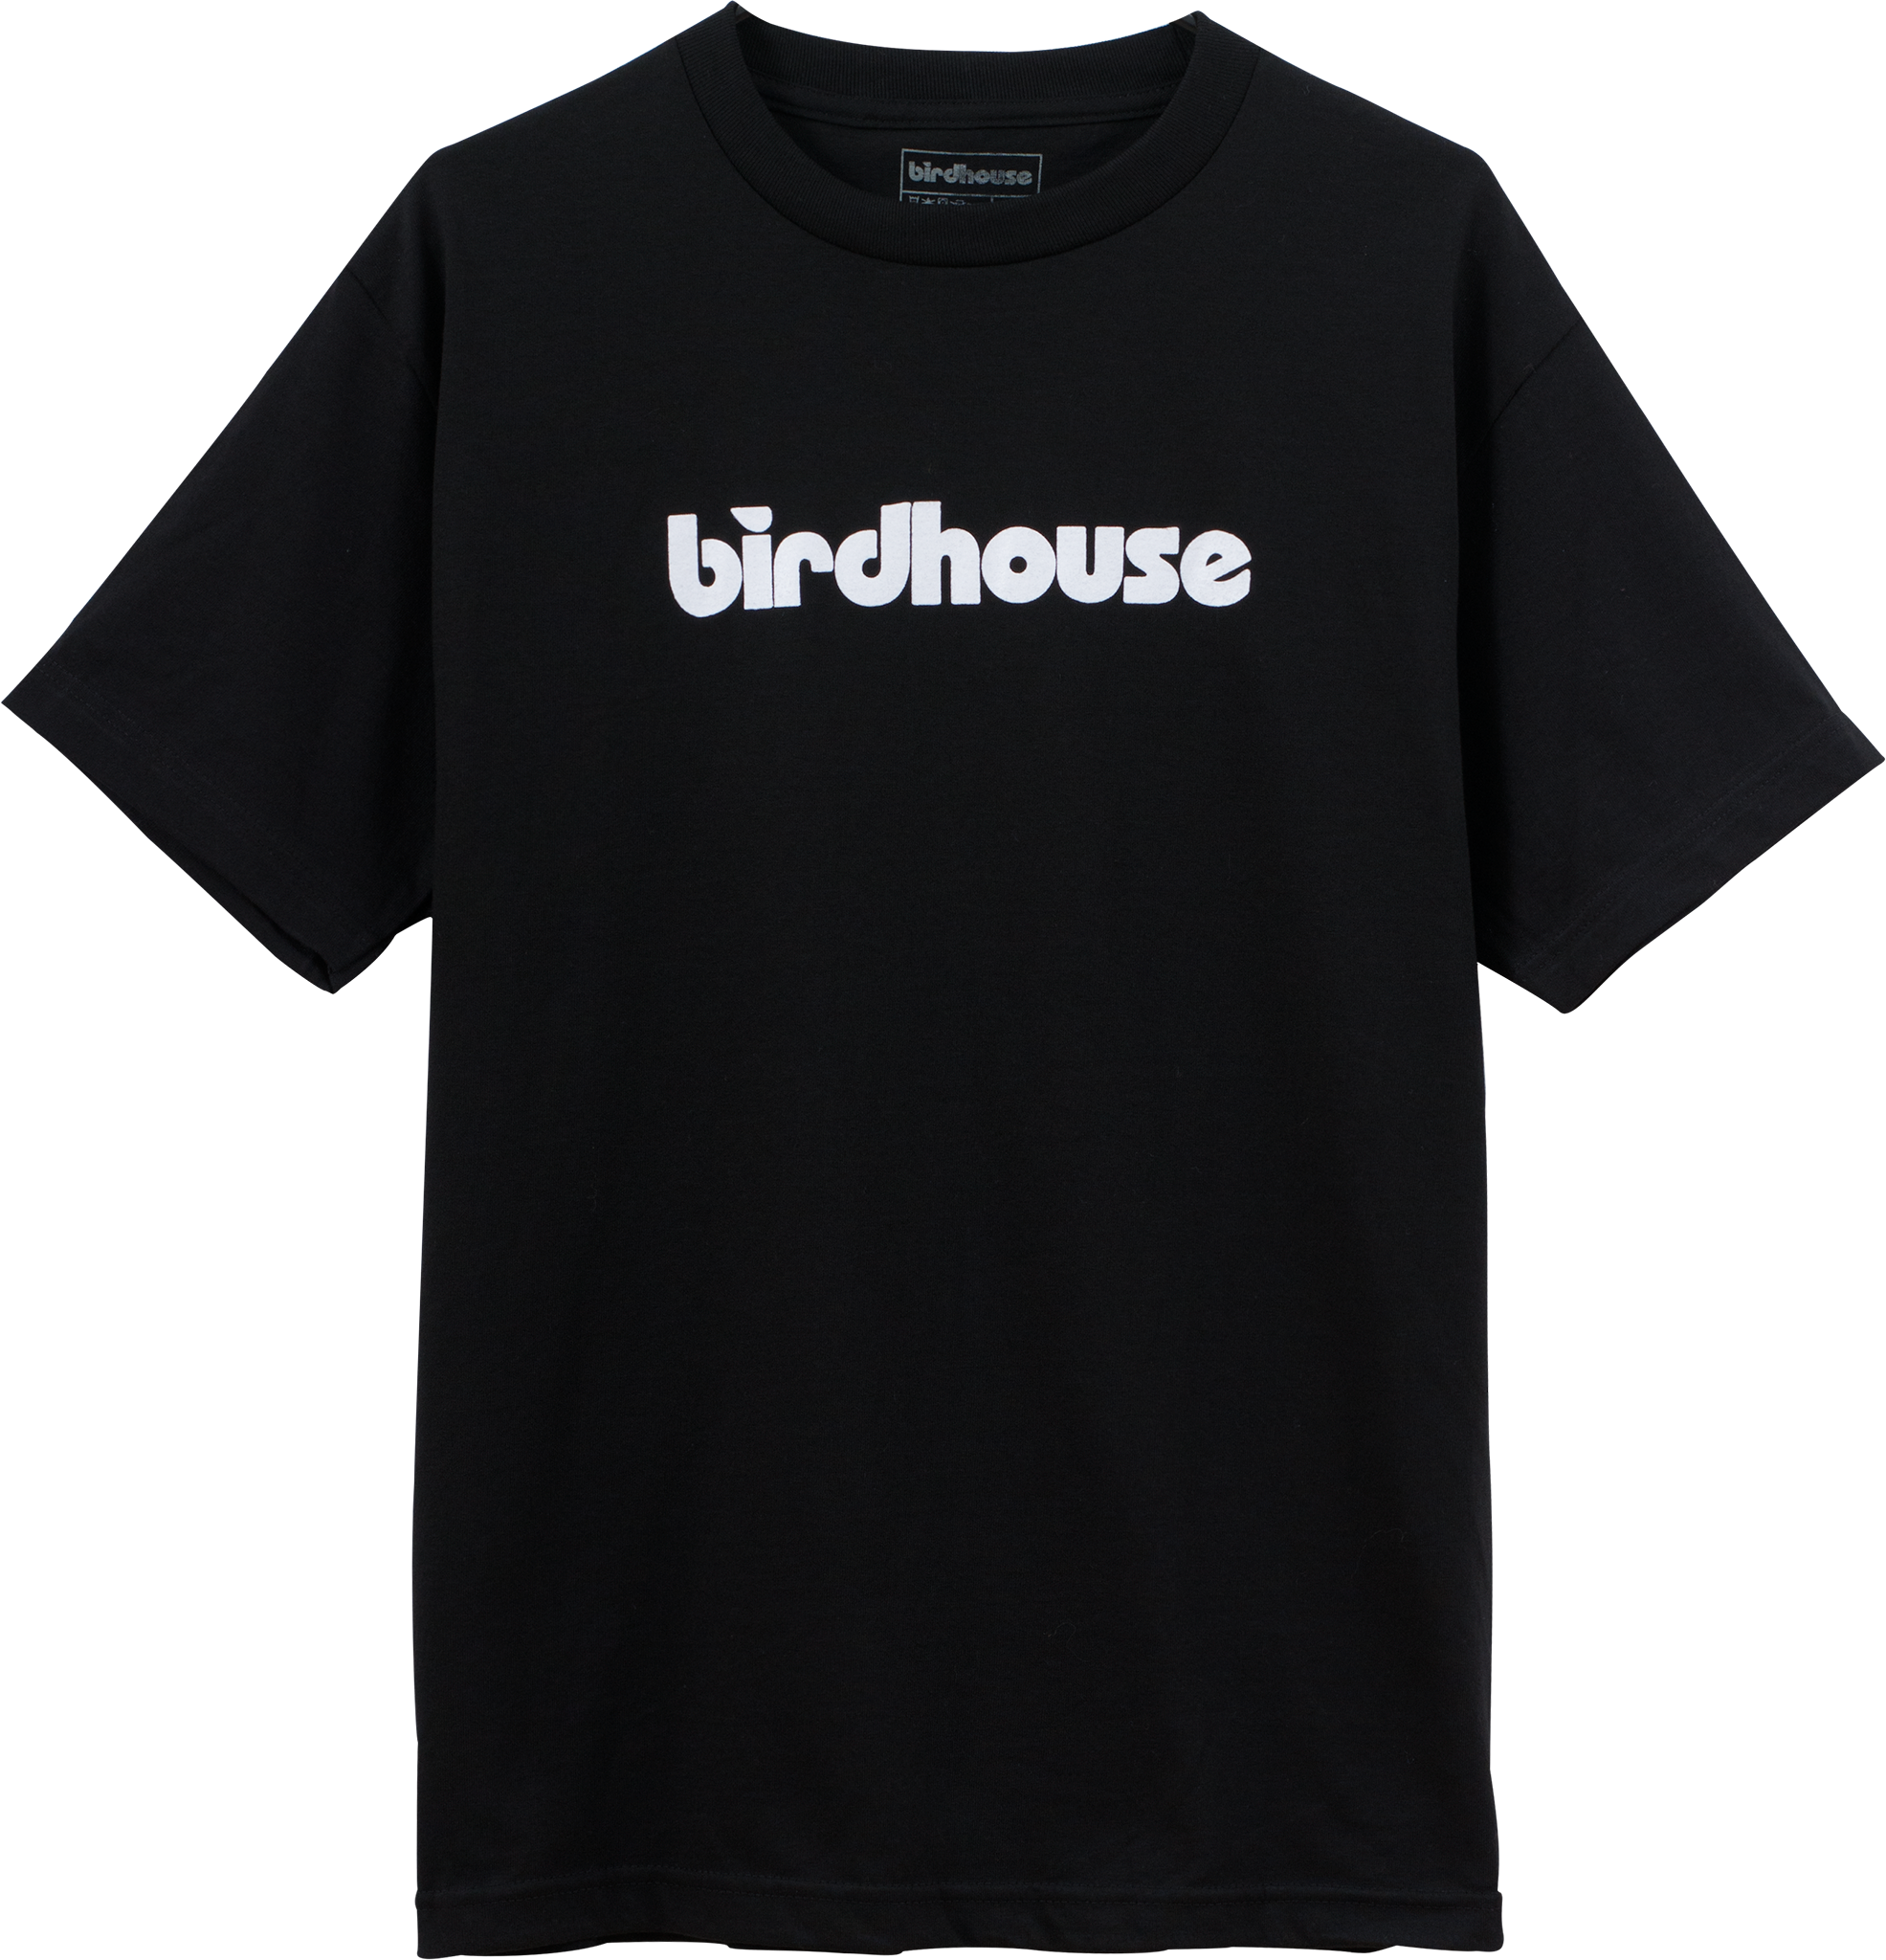 Birdhouse TOY LOGO T.